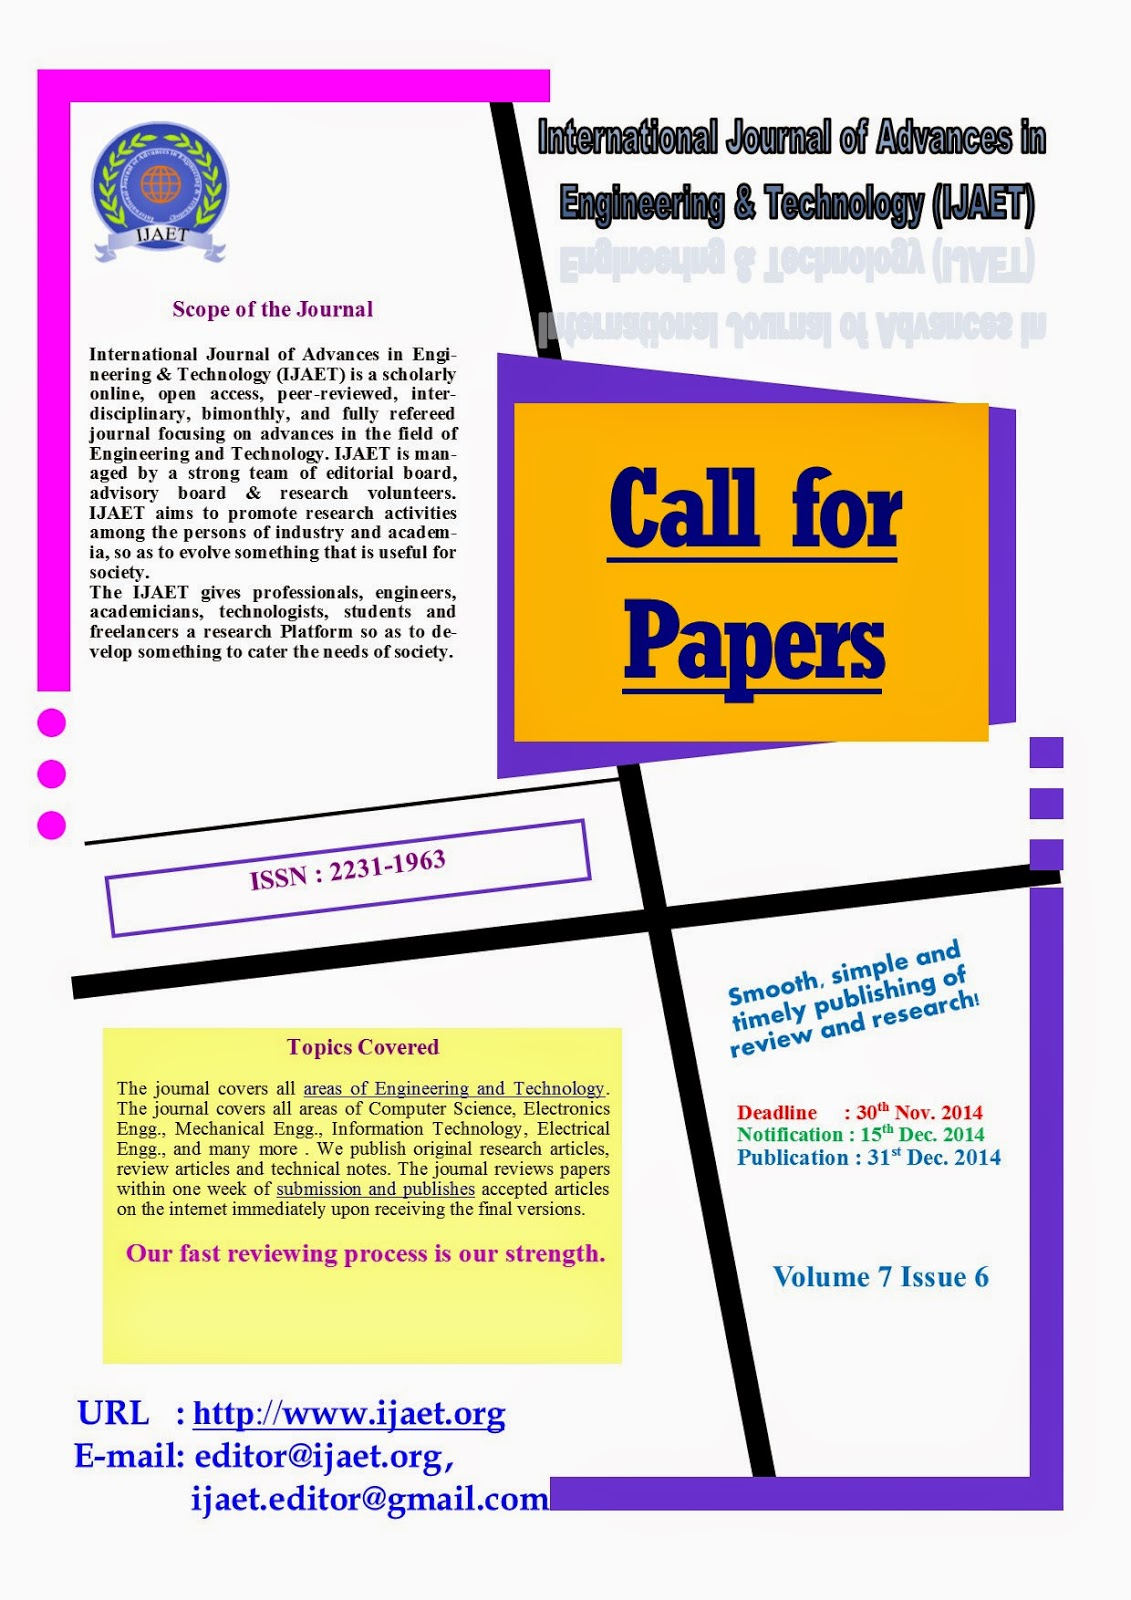 Call for Papers IJAET December